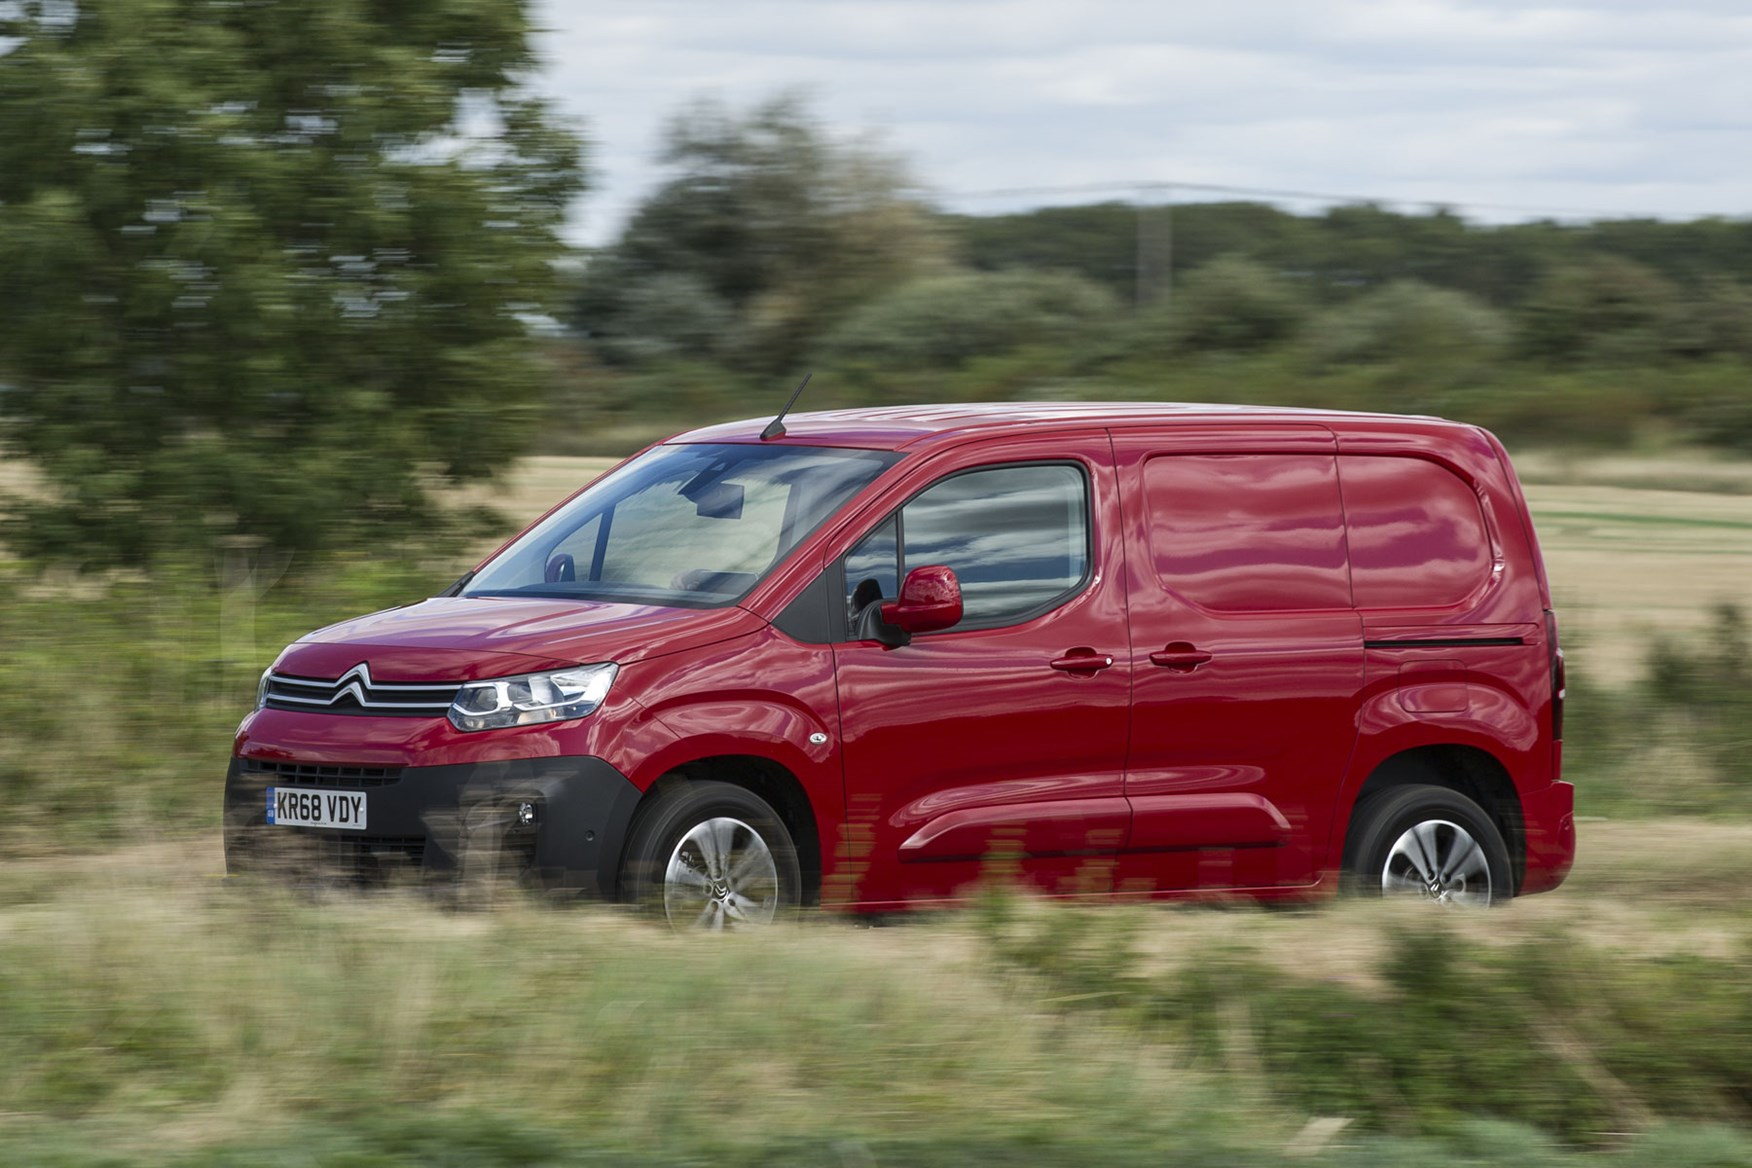 Citroen Berlingo van review - 2019 model, side view, red, driving